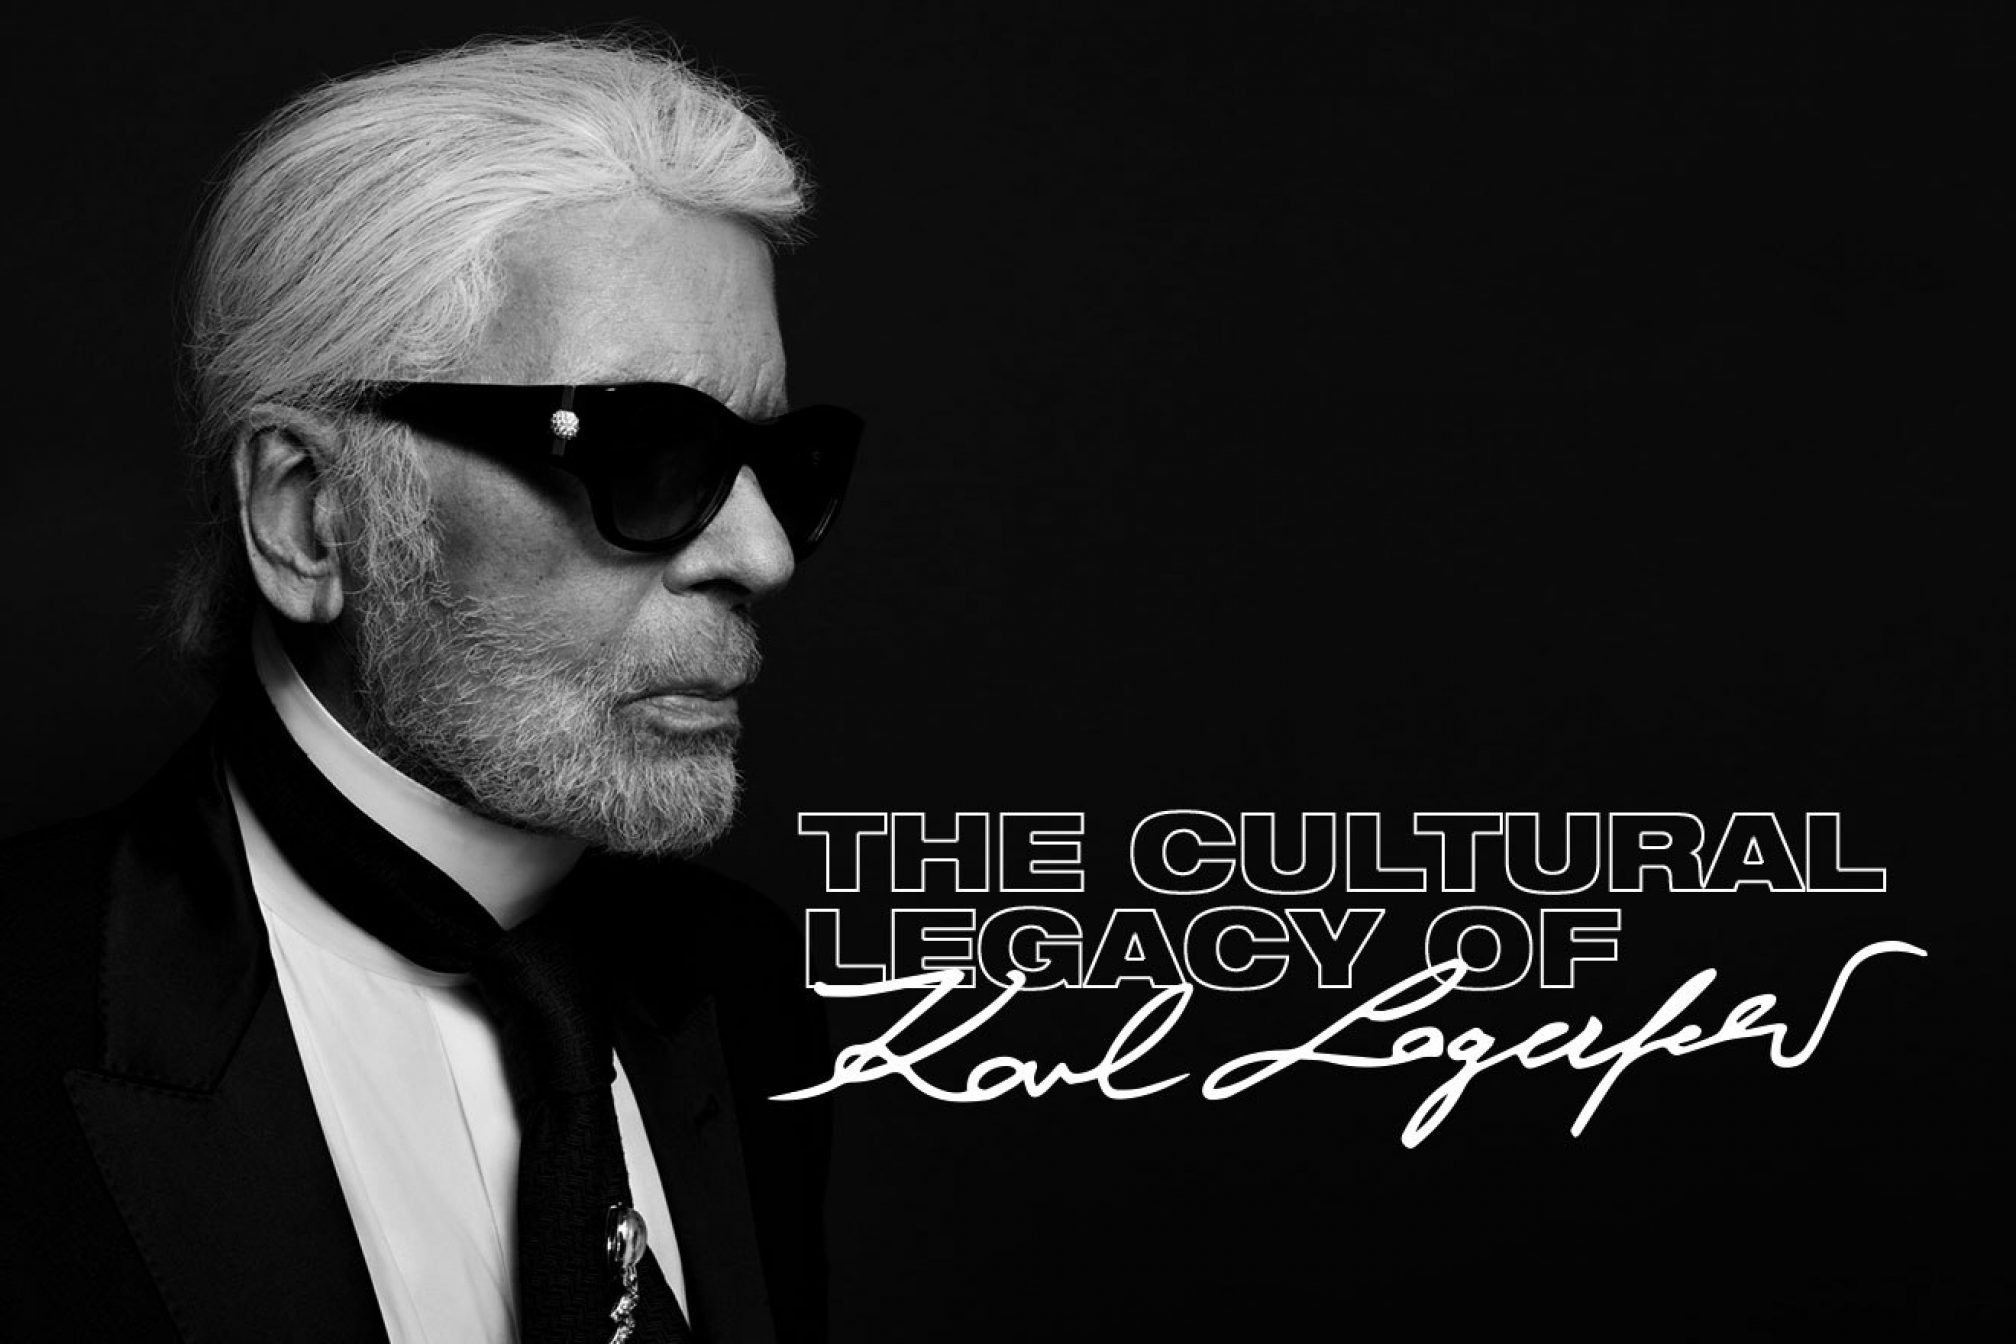 a7080ad12 The cultural legacy of Karl Lagerfeld - Culture - Mixmag